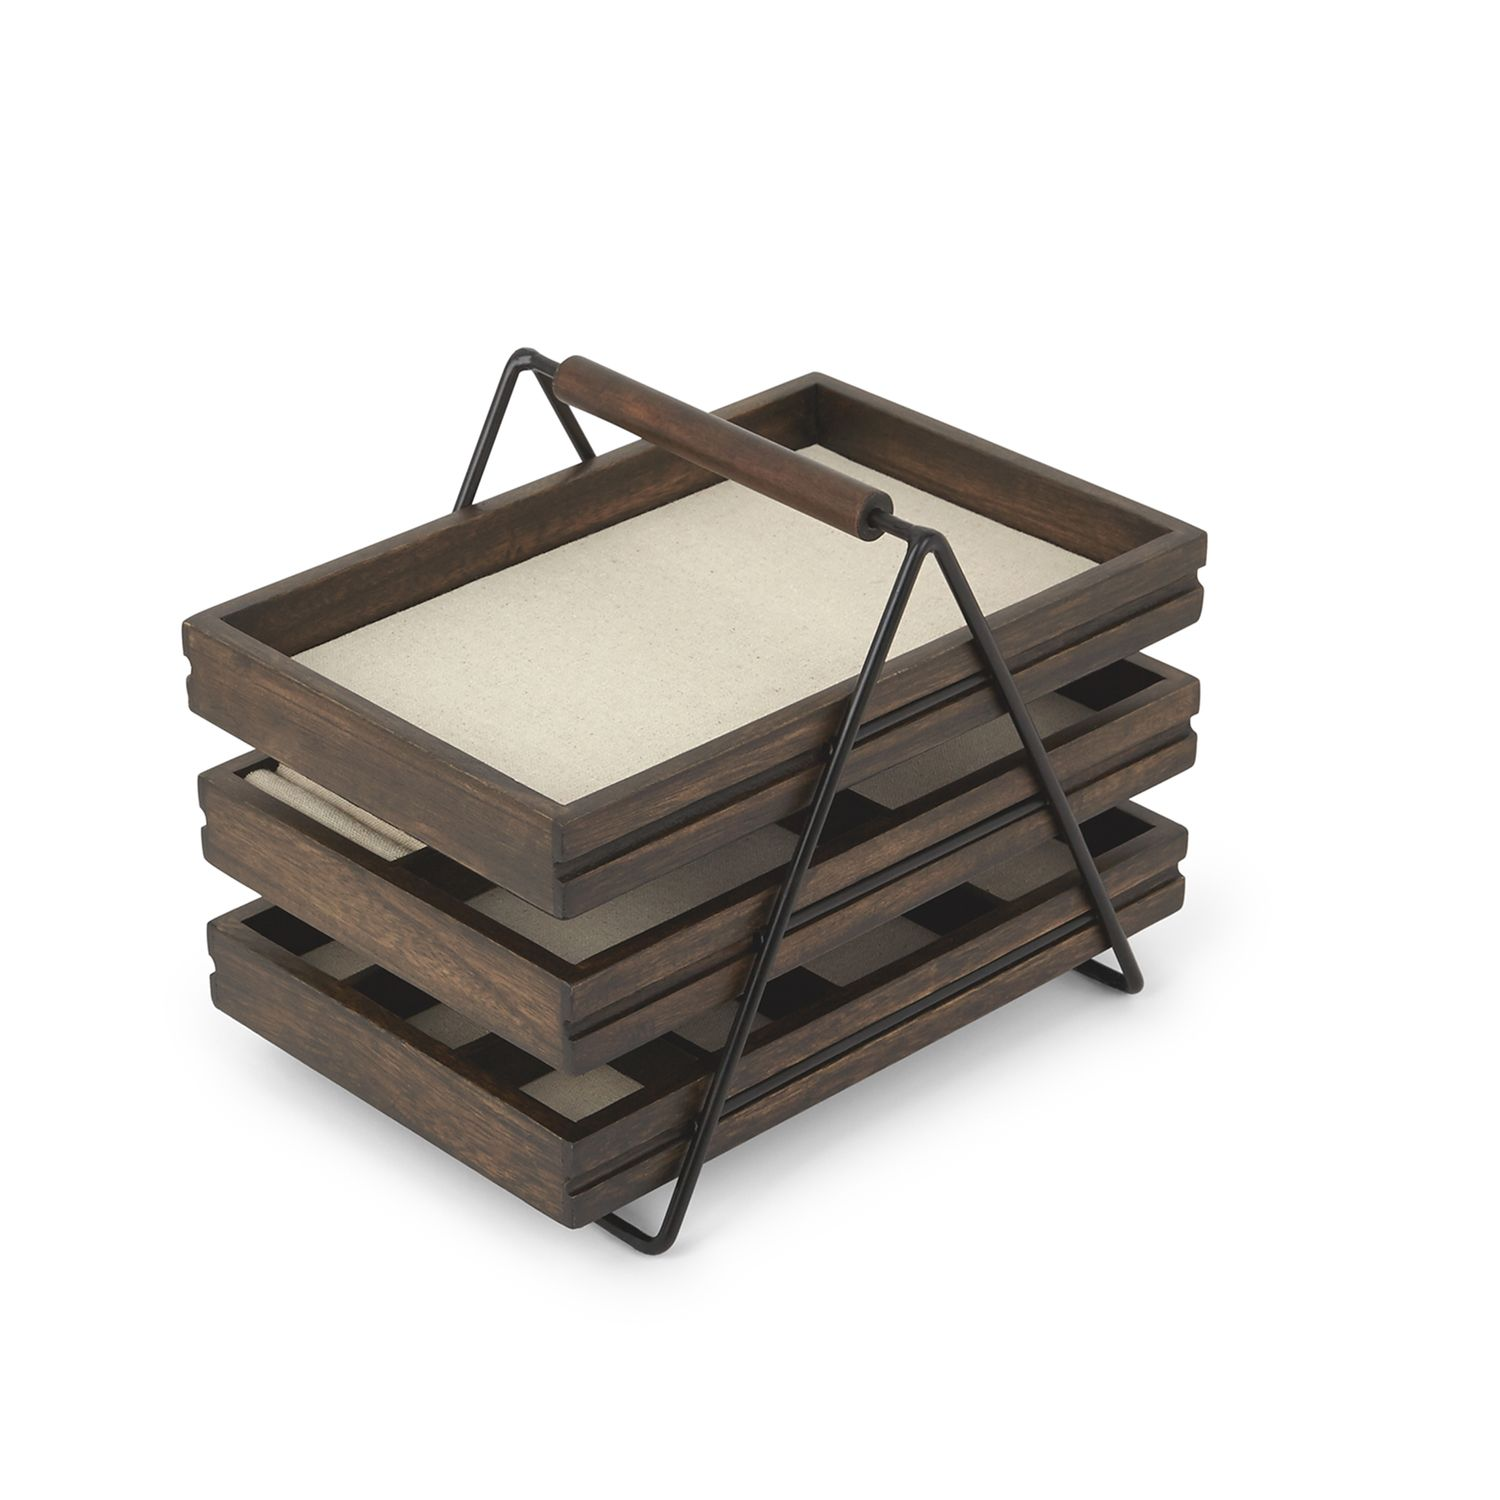 Umbra Terrace 3Tier Jewelry Tray Organizer